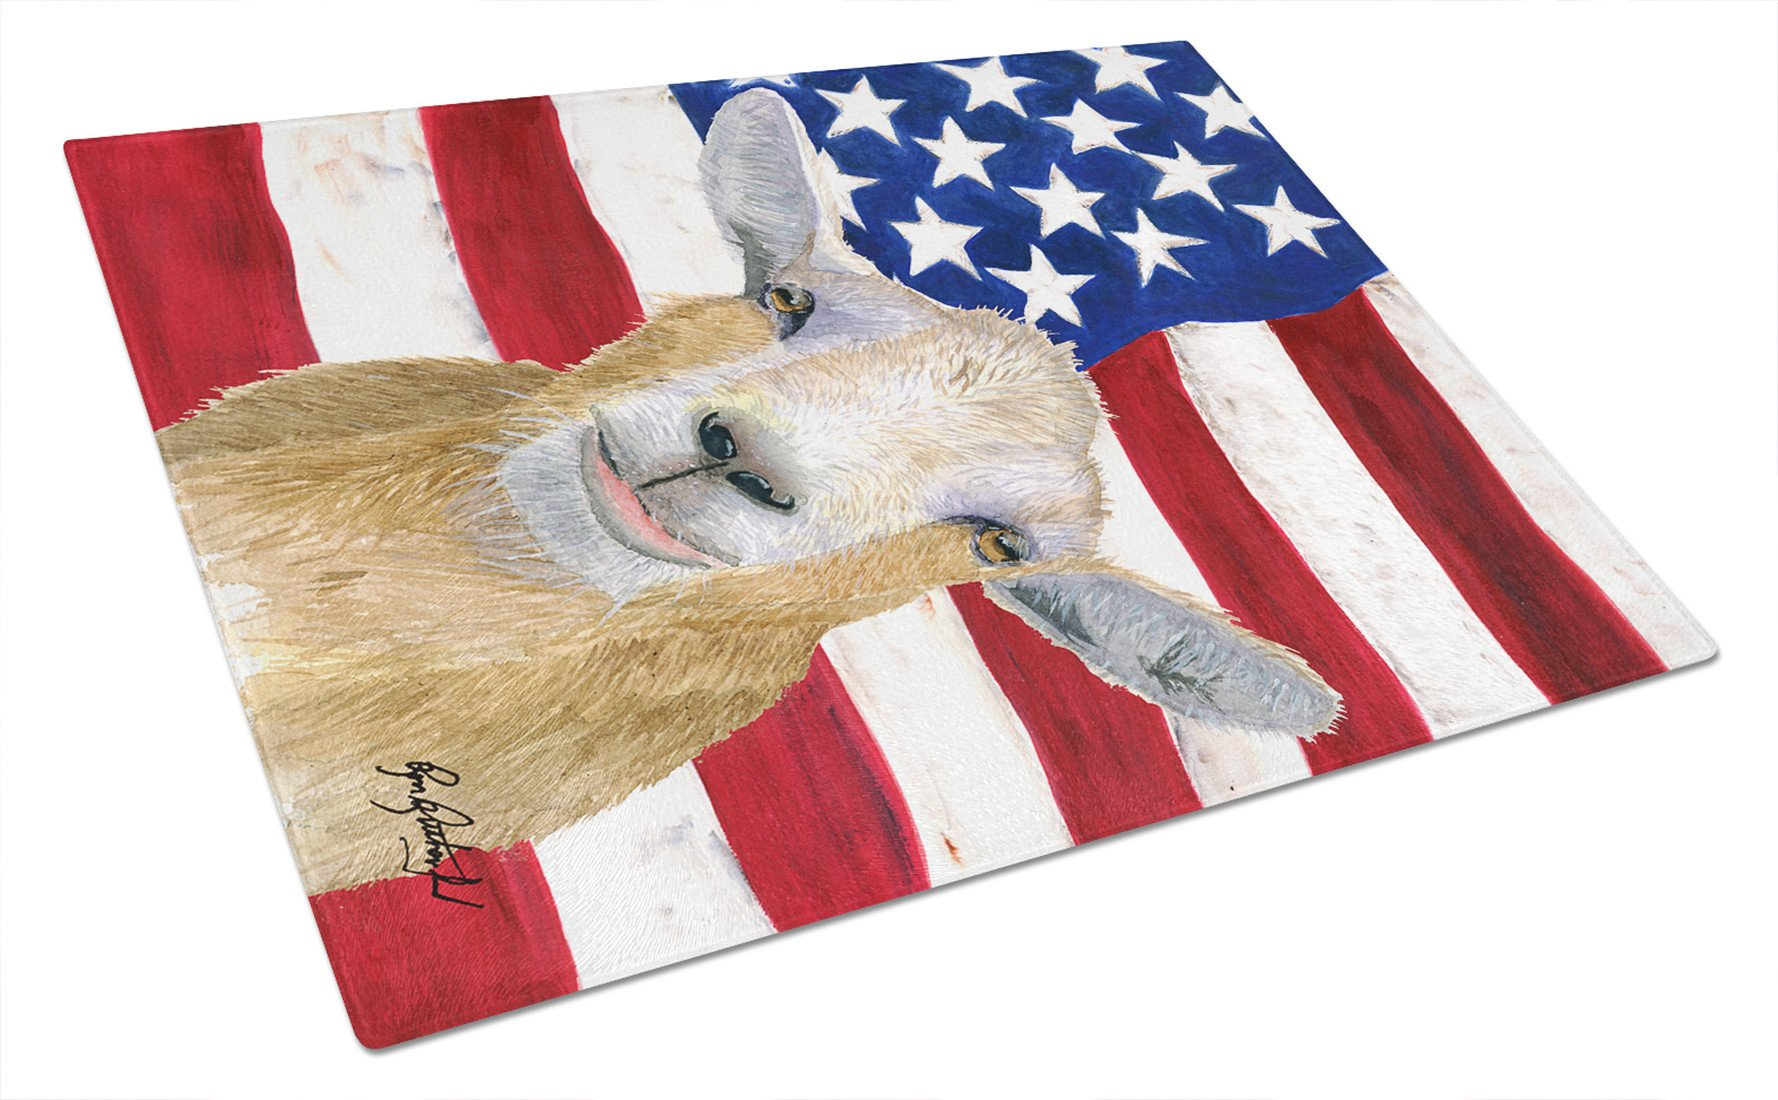 USA American Goat Glass Cutting Board Large by Caroline's Treasures